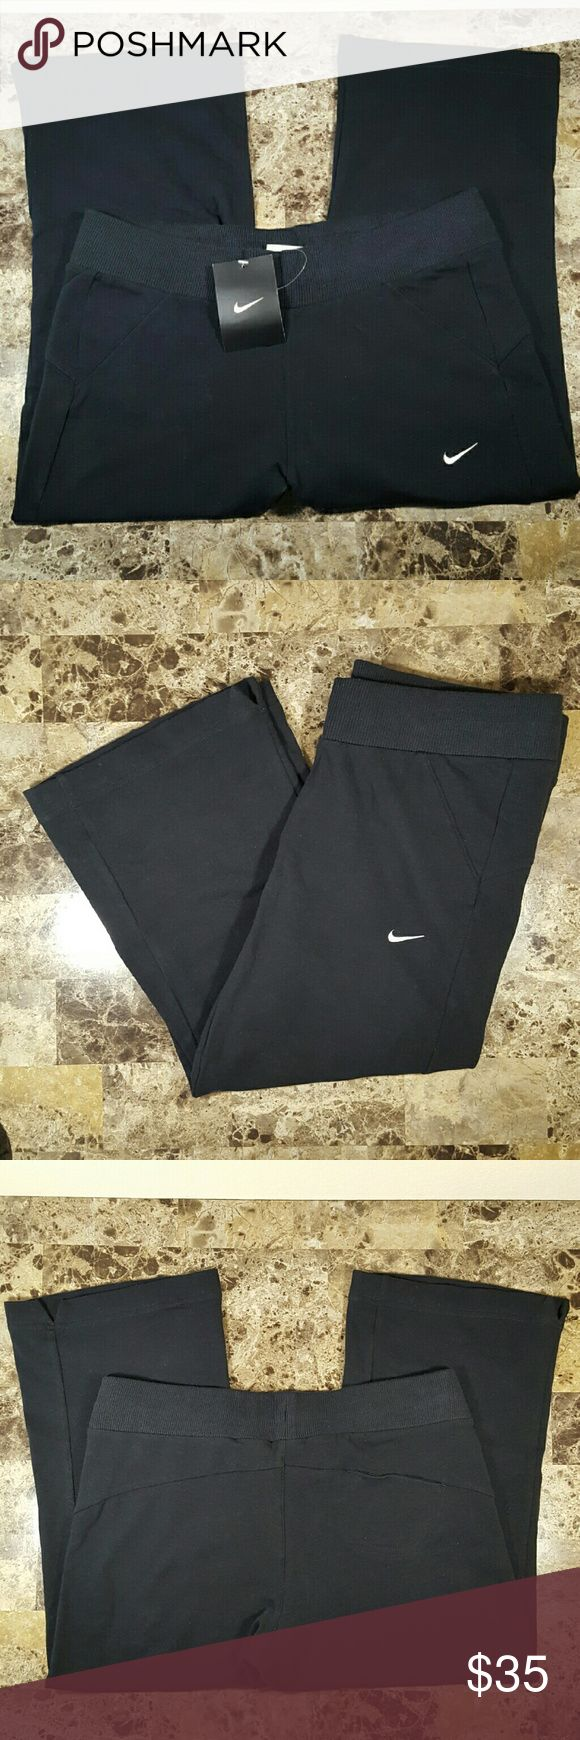 NIKE Women's Black Training Capris! NWT! New with tags, never worn! Women's NIKE black training capri pant in the style 415088. White stitched swoosh on front left, elastic waistband with white drawcord, and a single exterior coin pocket on back right. Loose breathable fit for extra comfort. Yog pant style seaming to highlight the figure. 95% cotton and 5% spandex. Size small. No trades! Nike Pants Capris